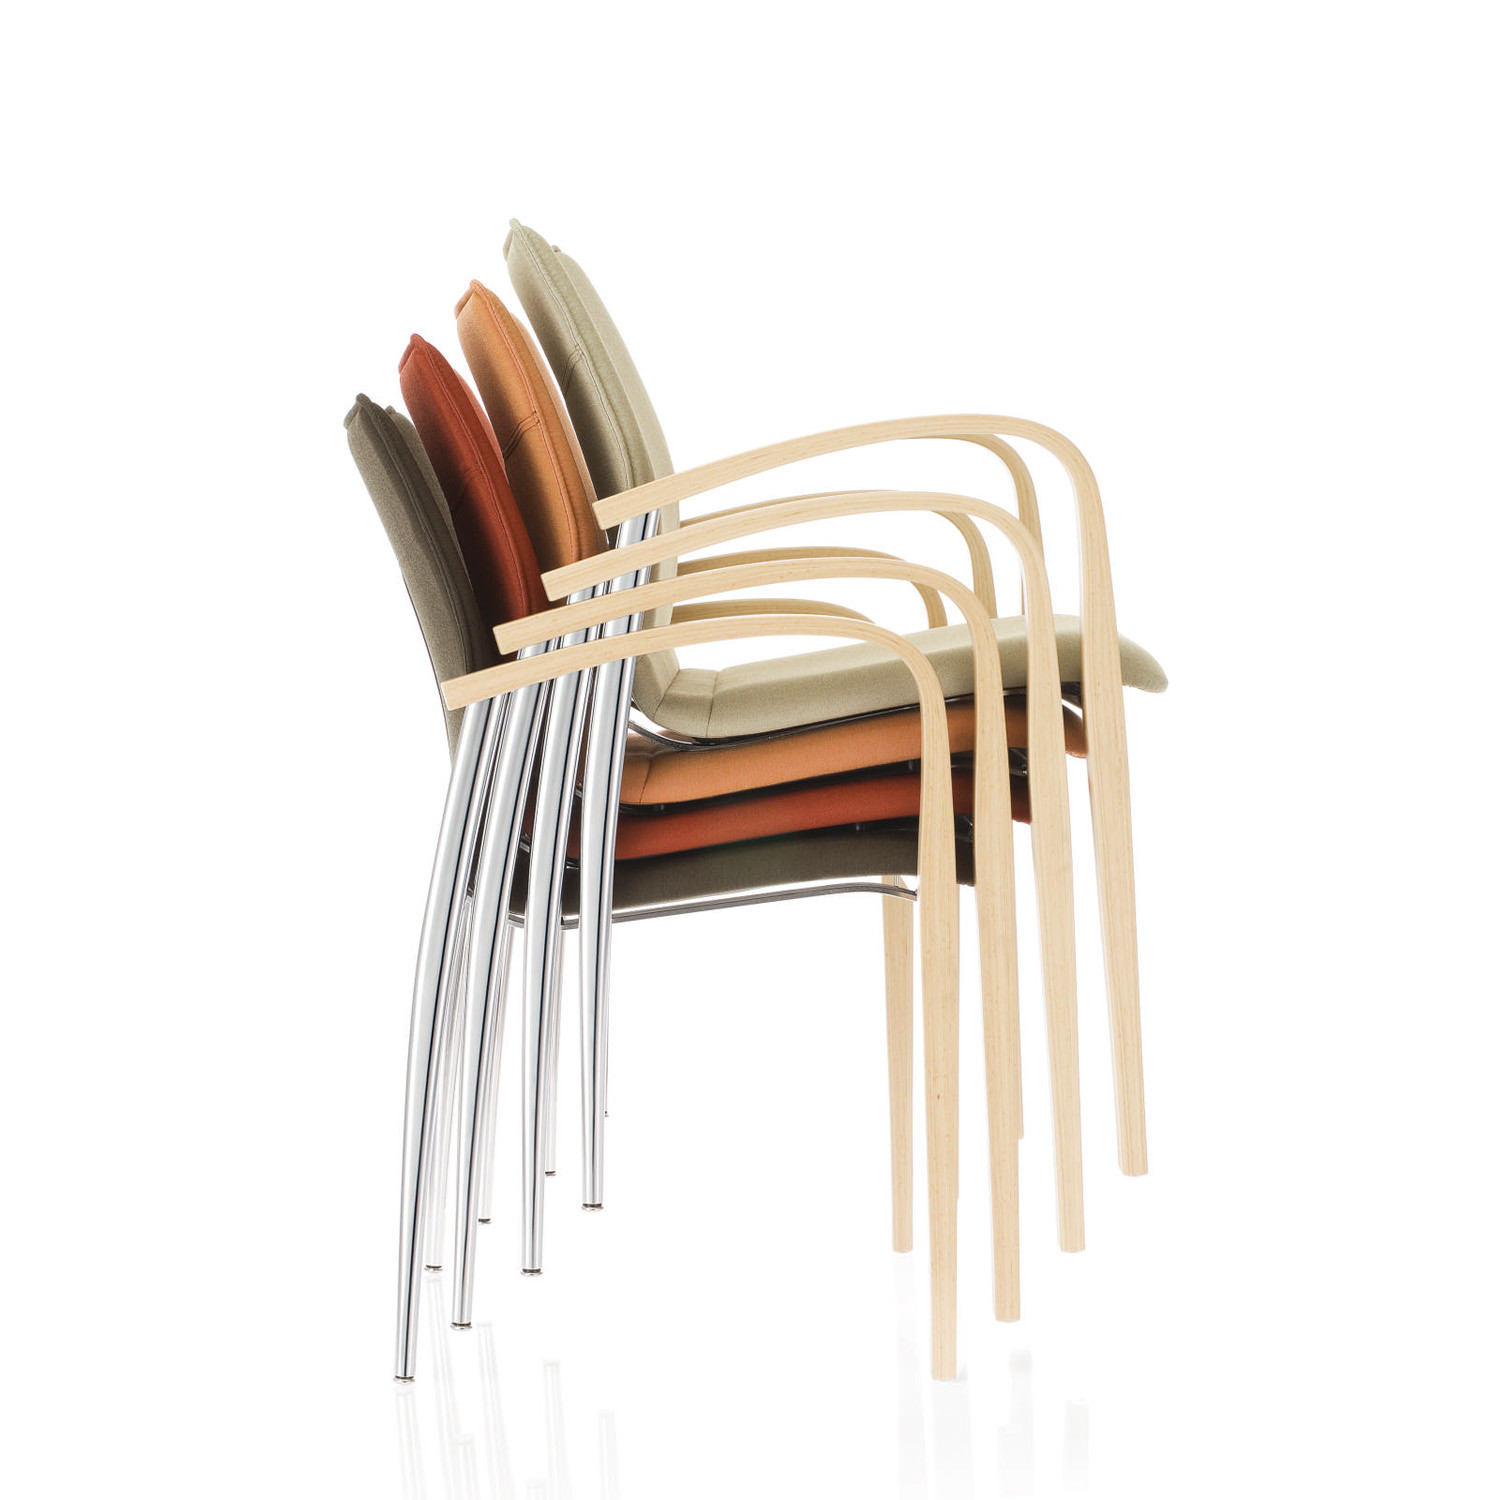 Plaza Stackable Chairs with 4-Legged Frame